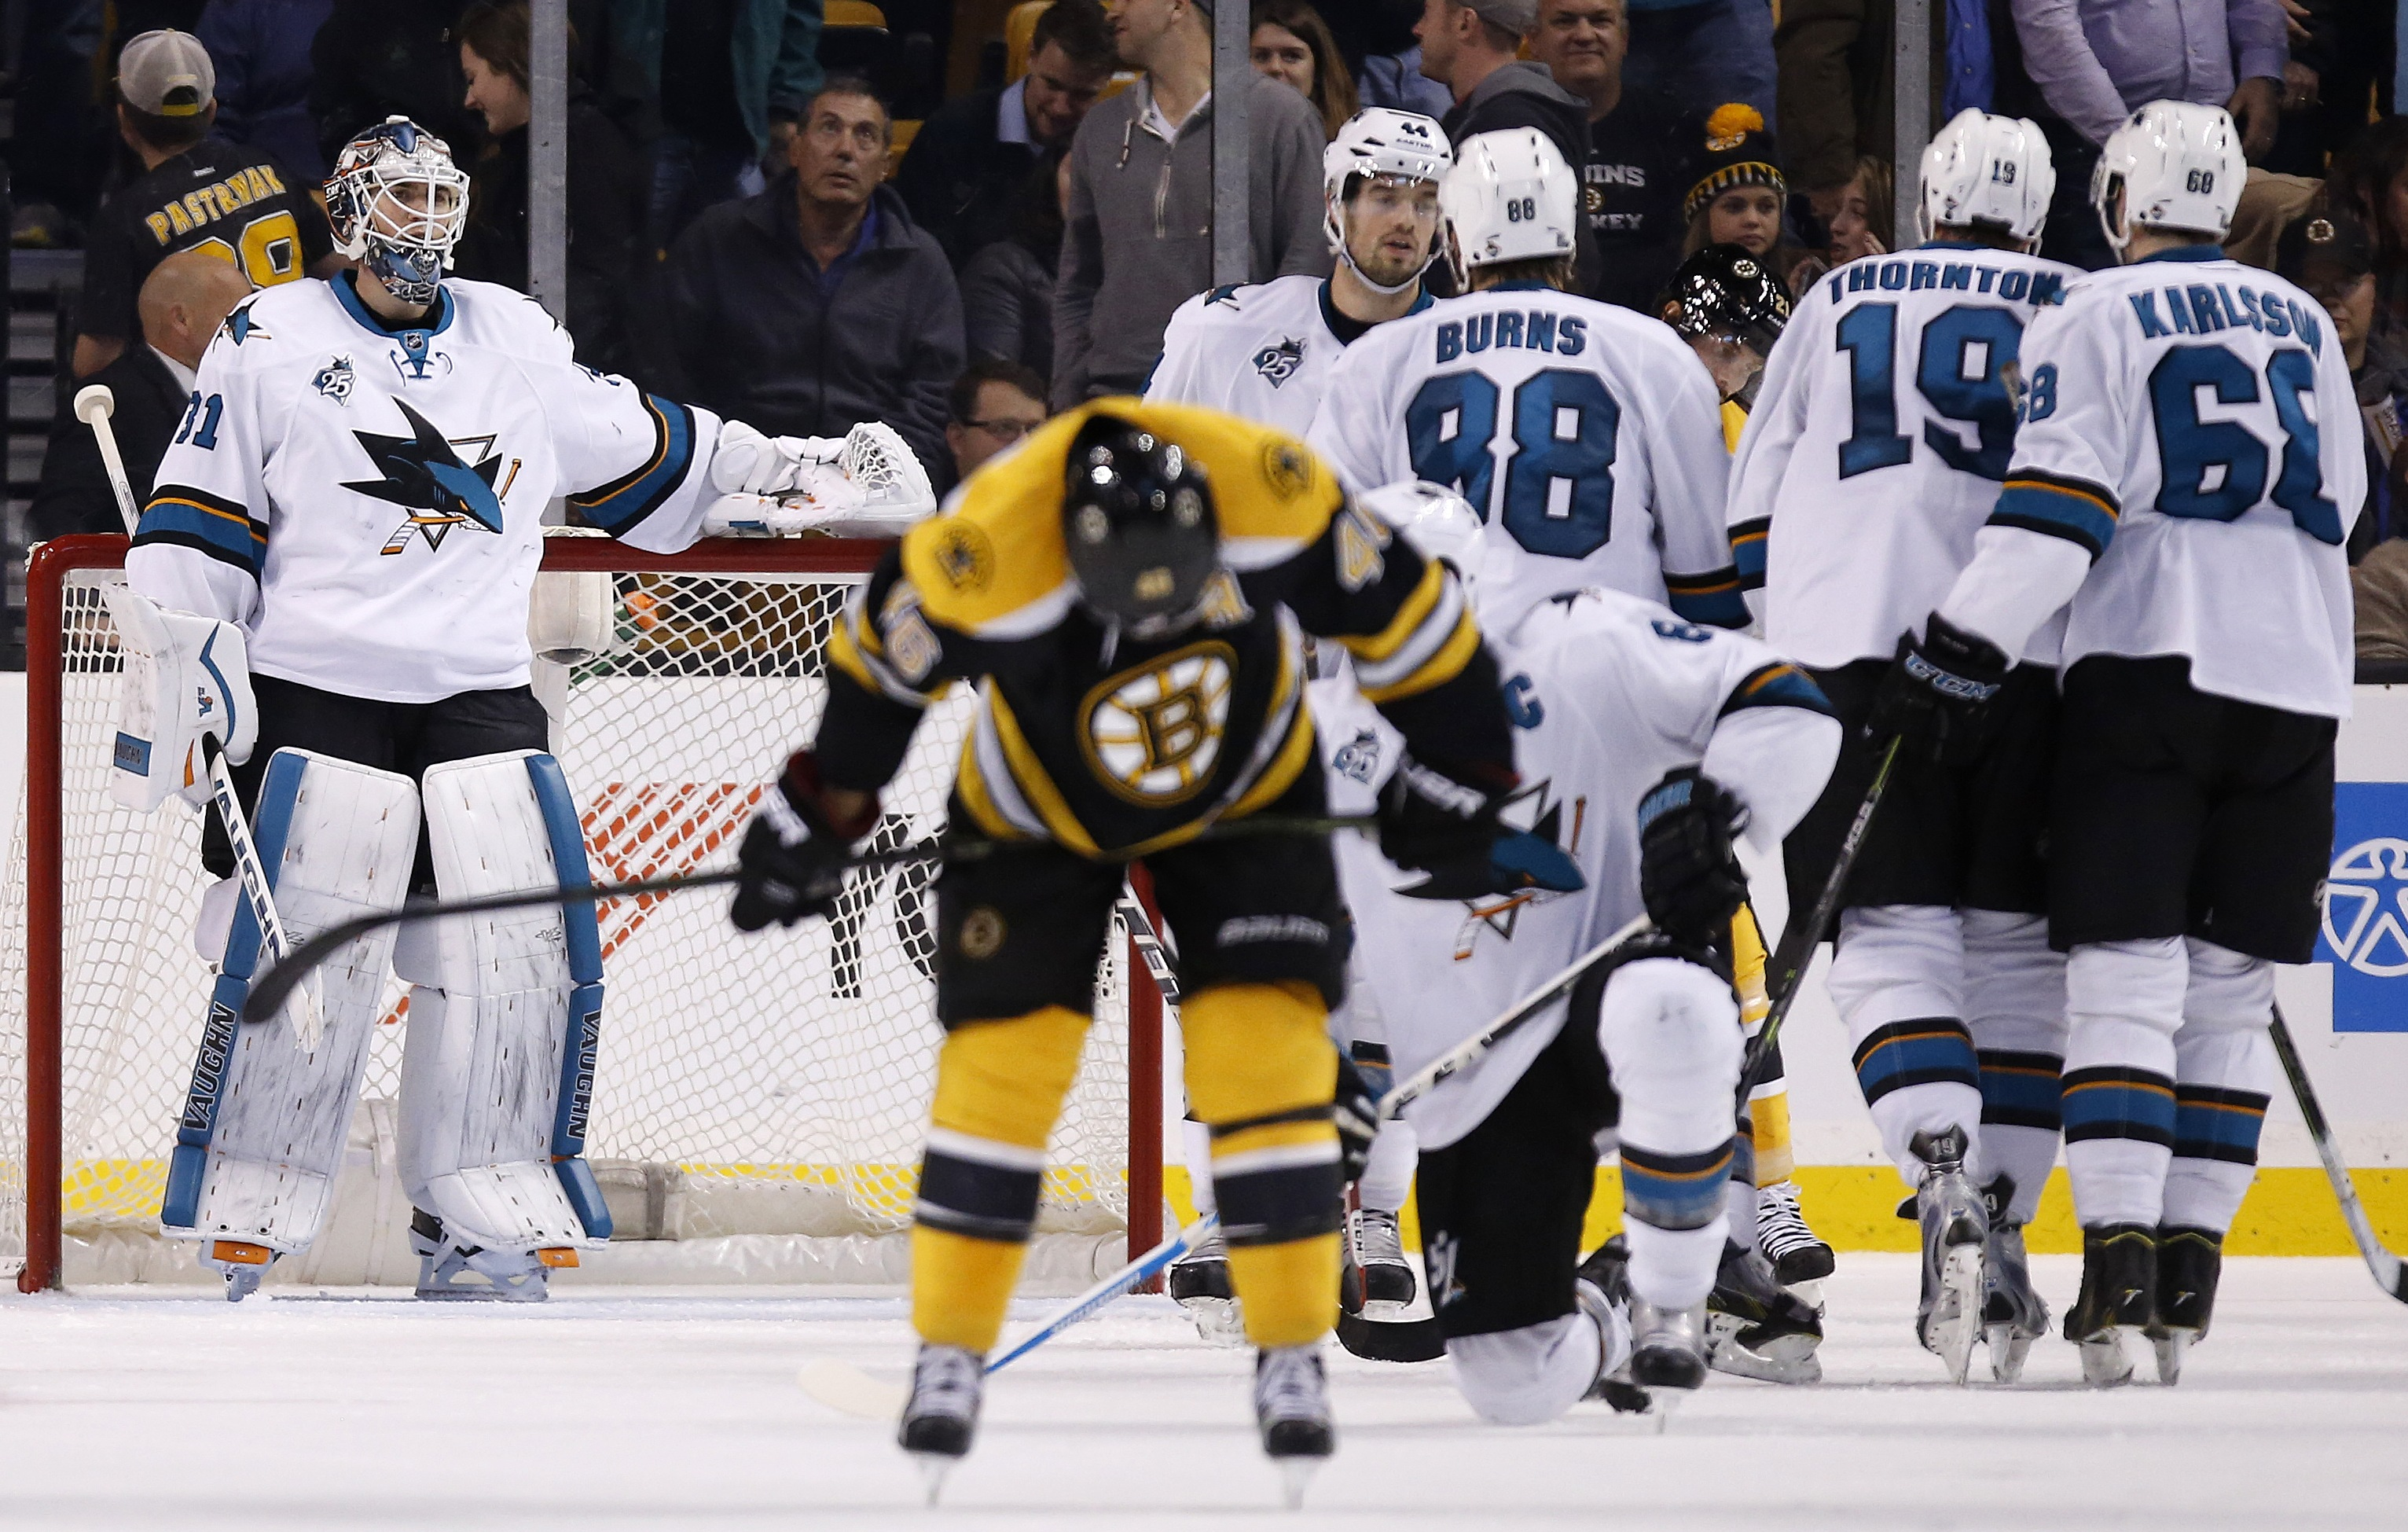 San Jose Sharks' Martin Jones, left, stands in the net and Boston Bruins' David Krejci, foreground center, skates away as the Sharks celebrate after defeating the Bruins 5-4 in an NHL hockey game in Boston, Tuesday, Nov. 17, 2015. (Photo/Michael Dwyer)